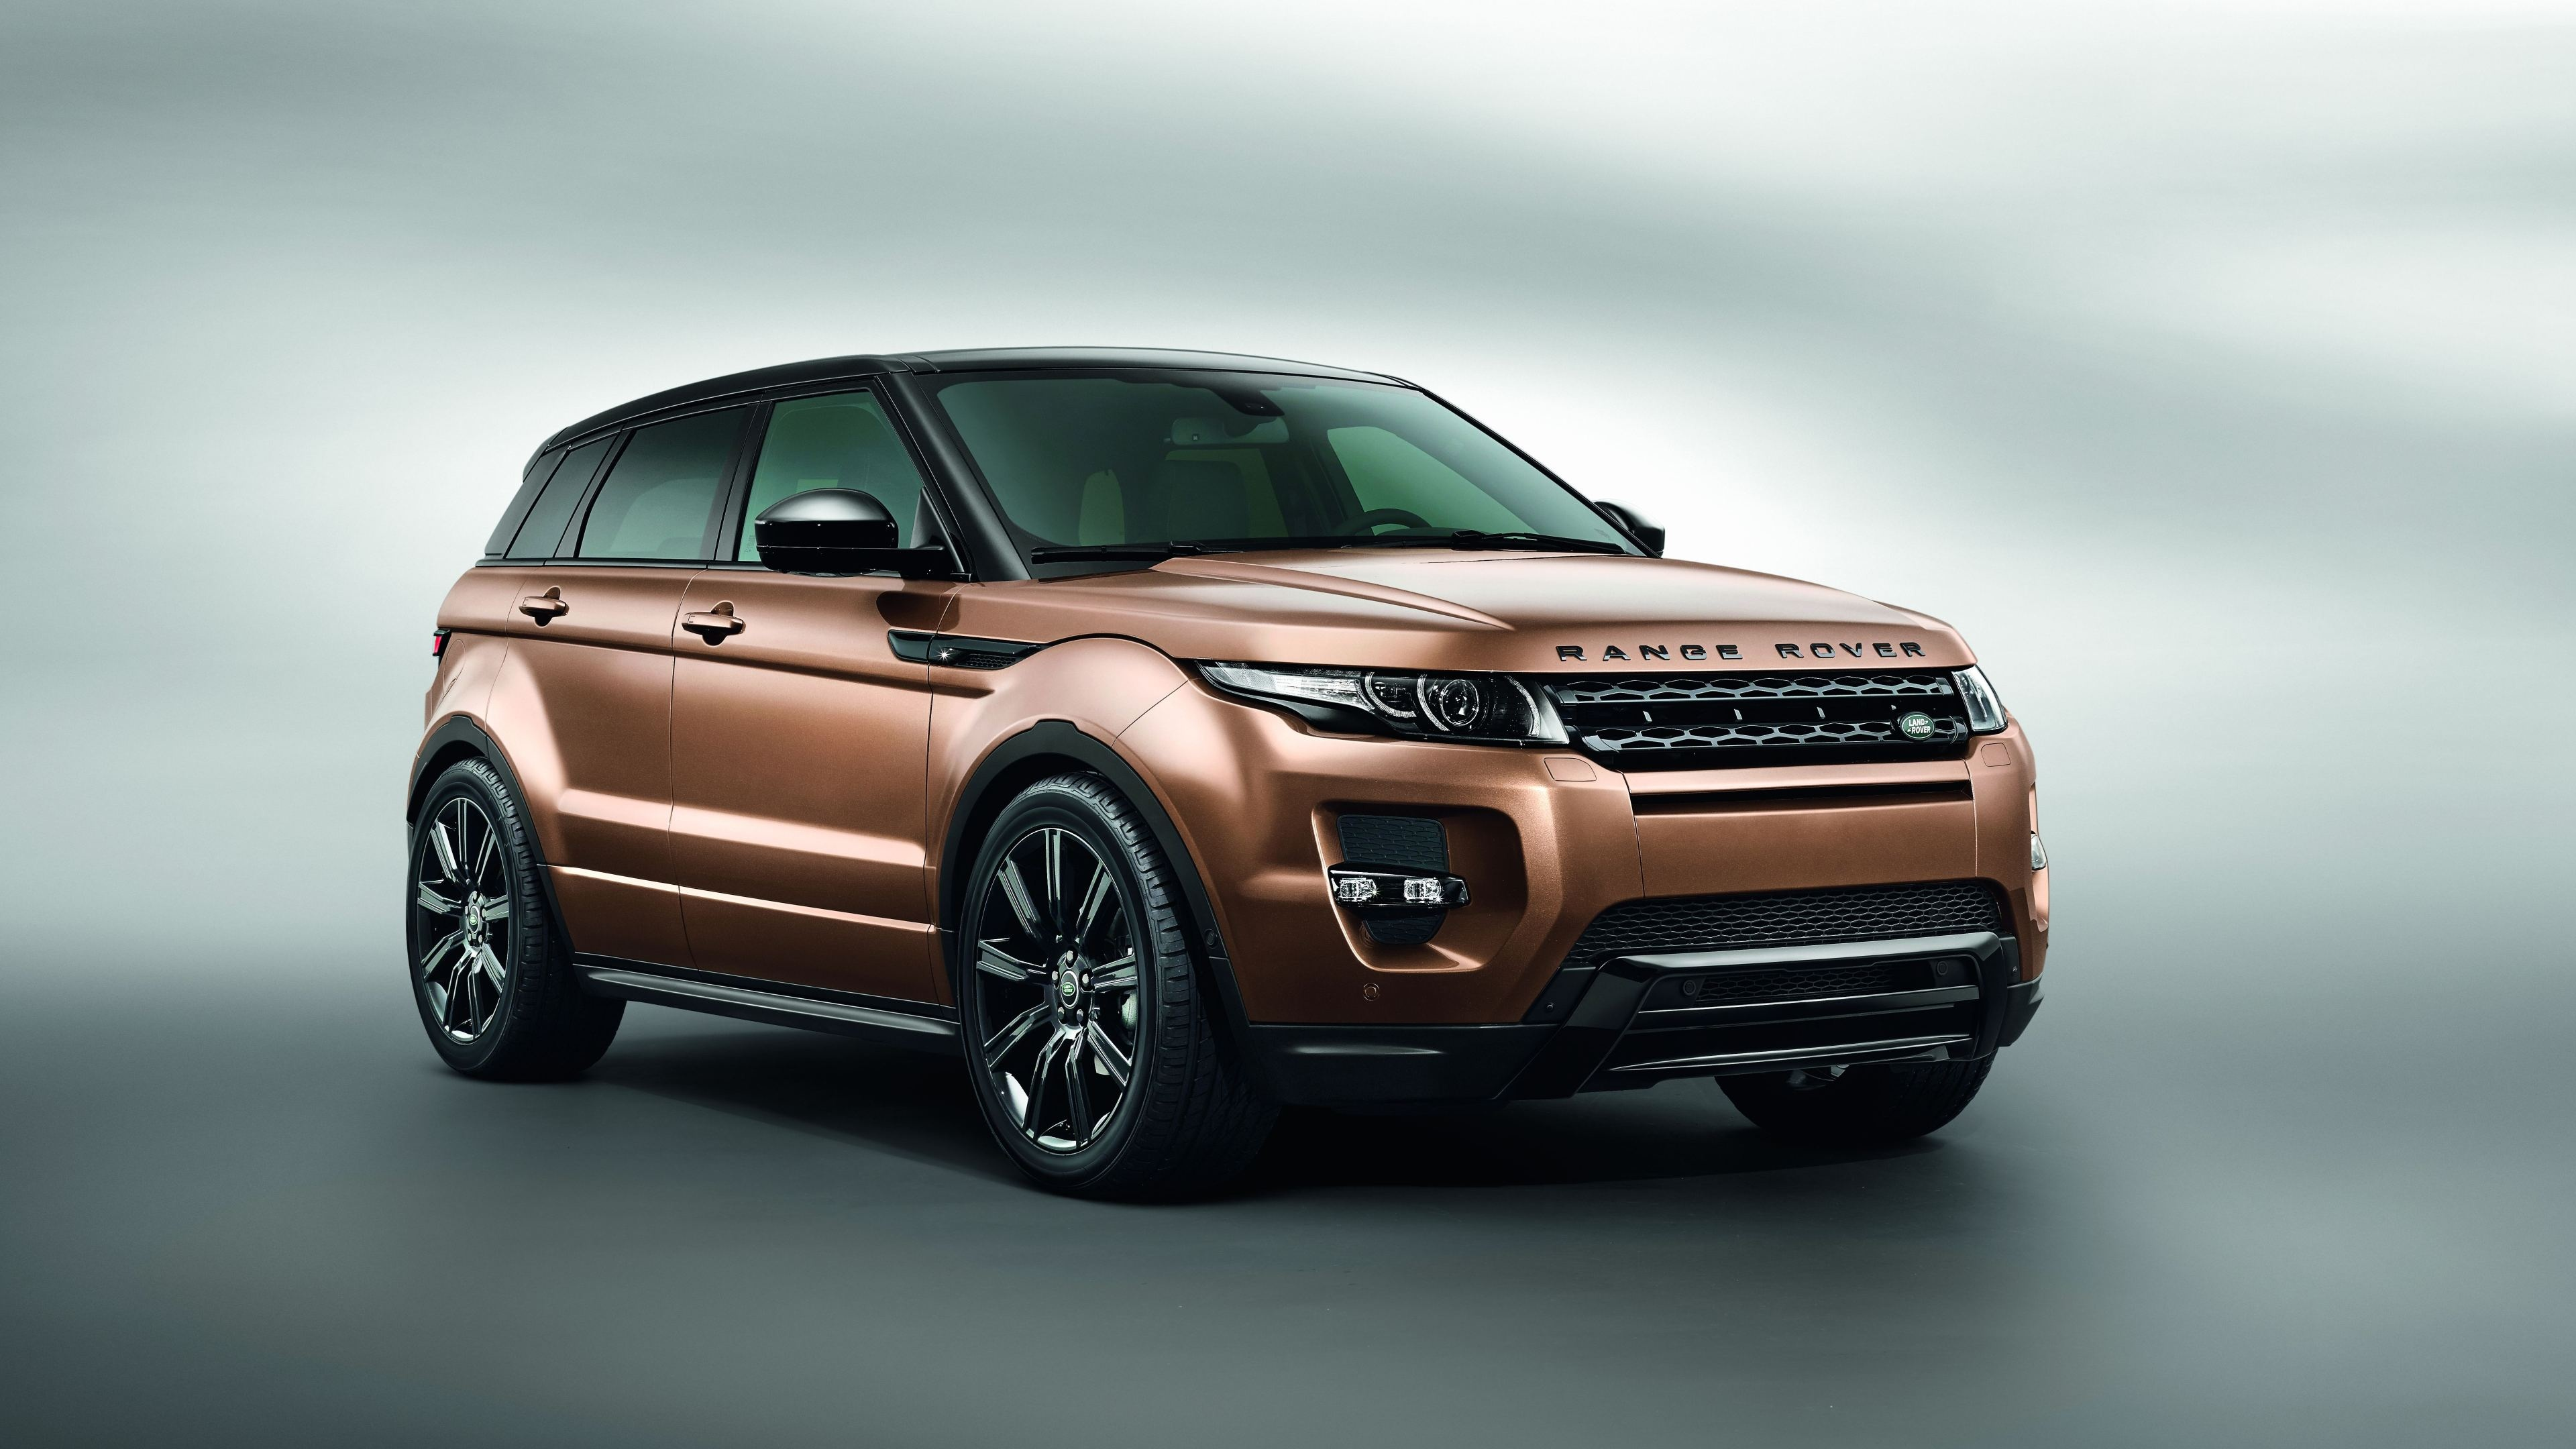 range rover evoque hd wallpapers. Black Bedroom Furniture Sets. Home Design Ideas